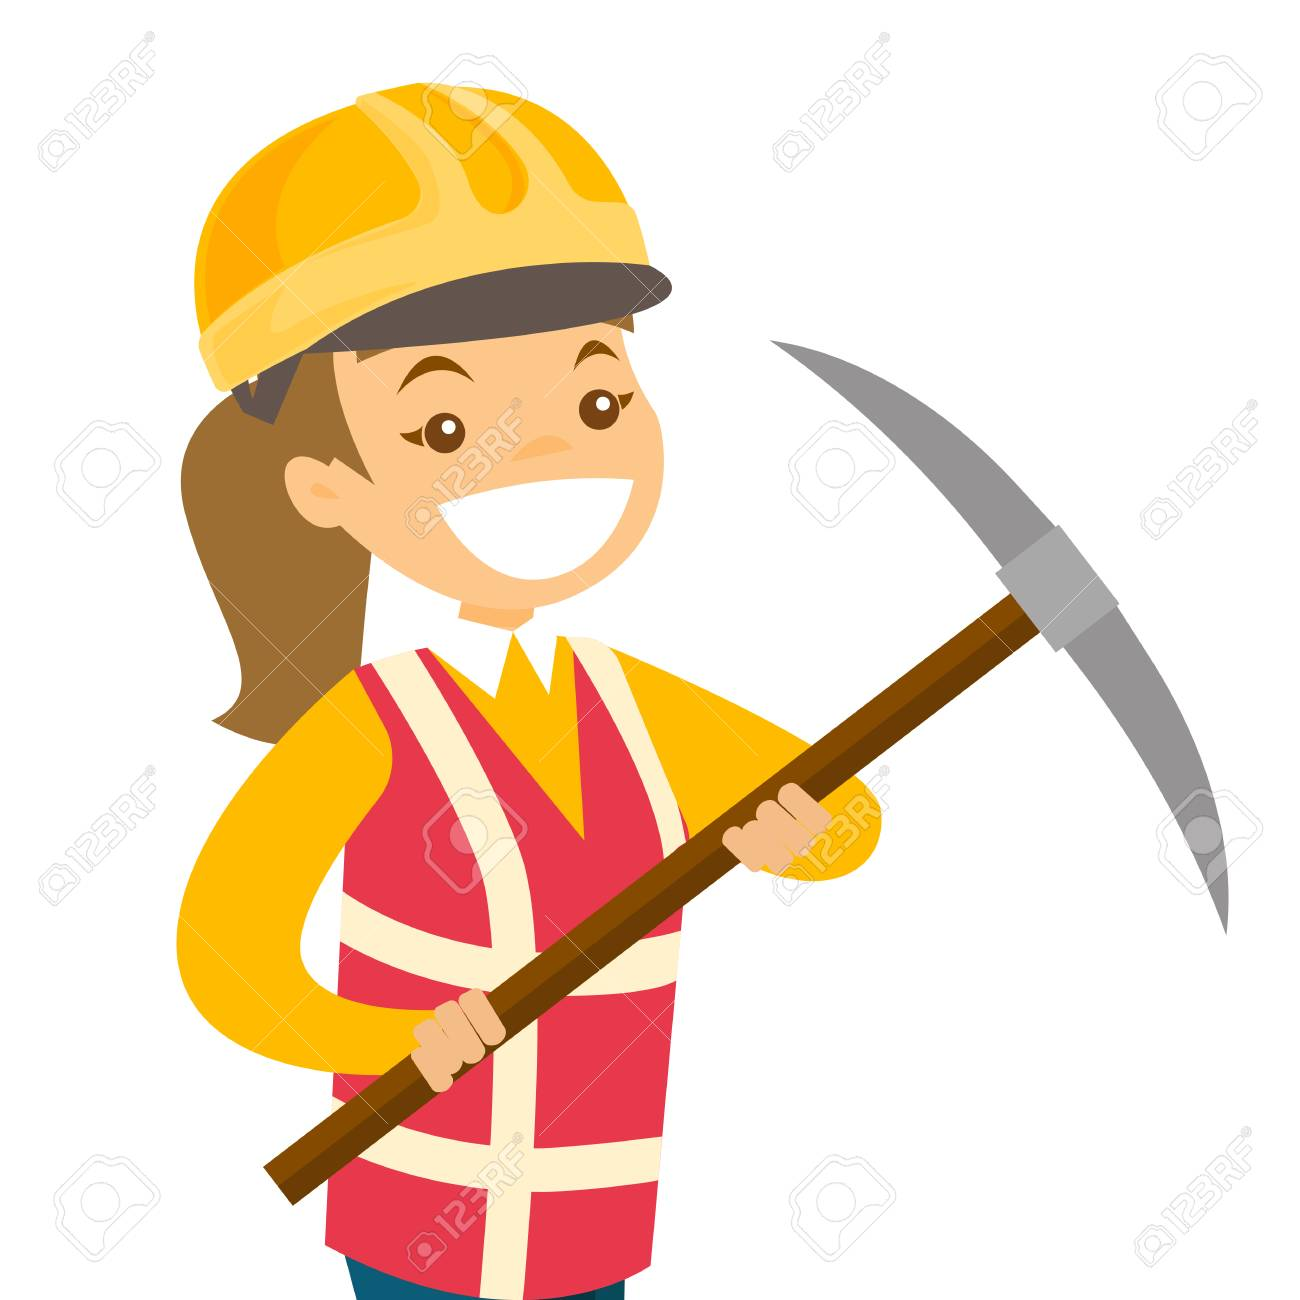 Caucasian White Miner In Hard Hat Standing Next To The Mining Royalty Free Cliparts Vectors And Stock Illustration Image 98048485